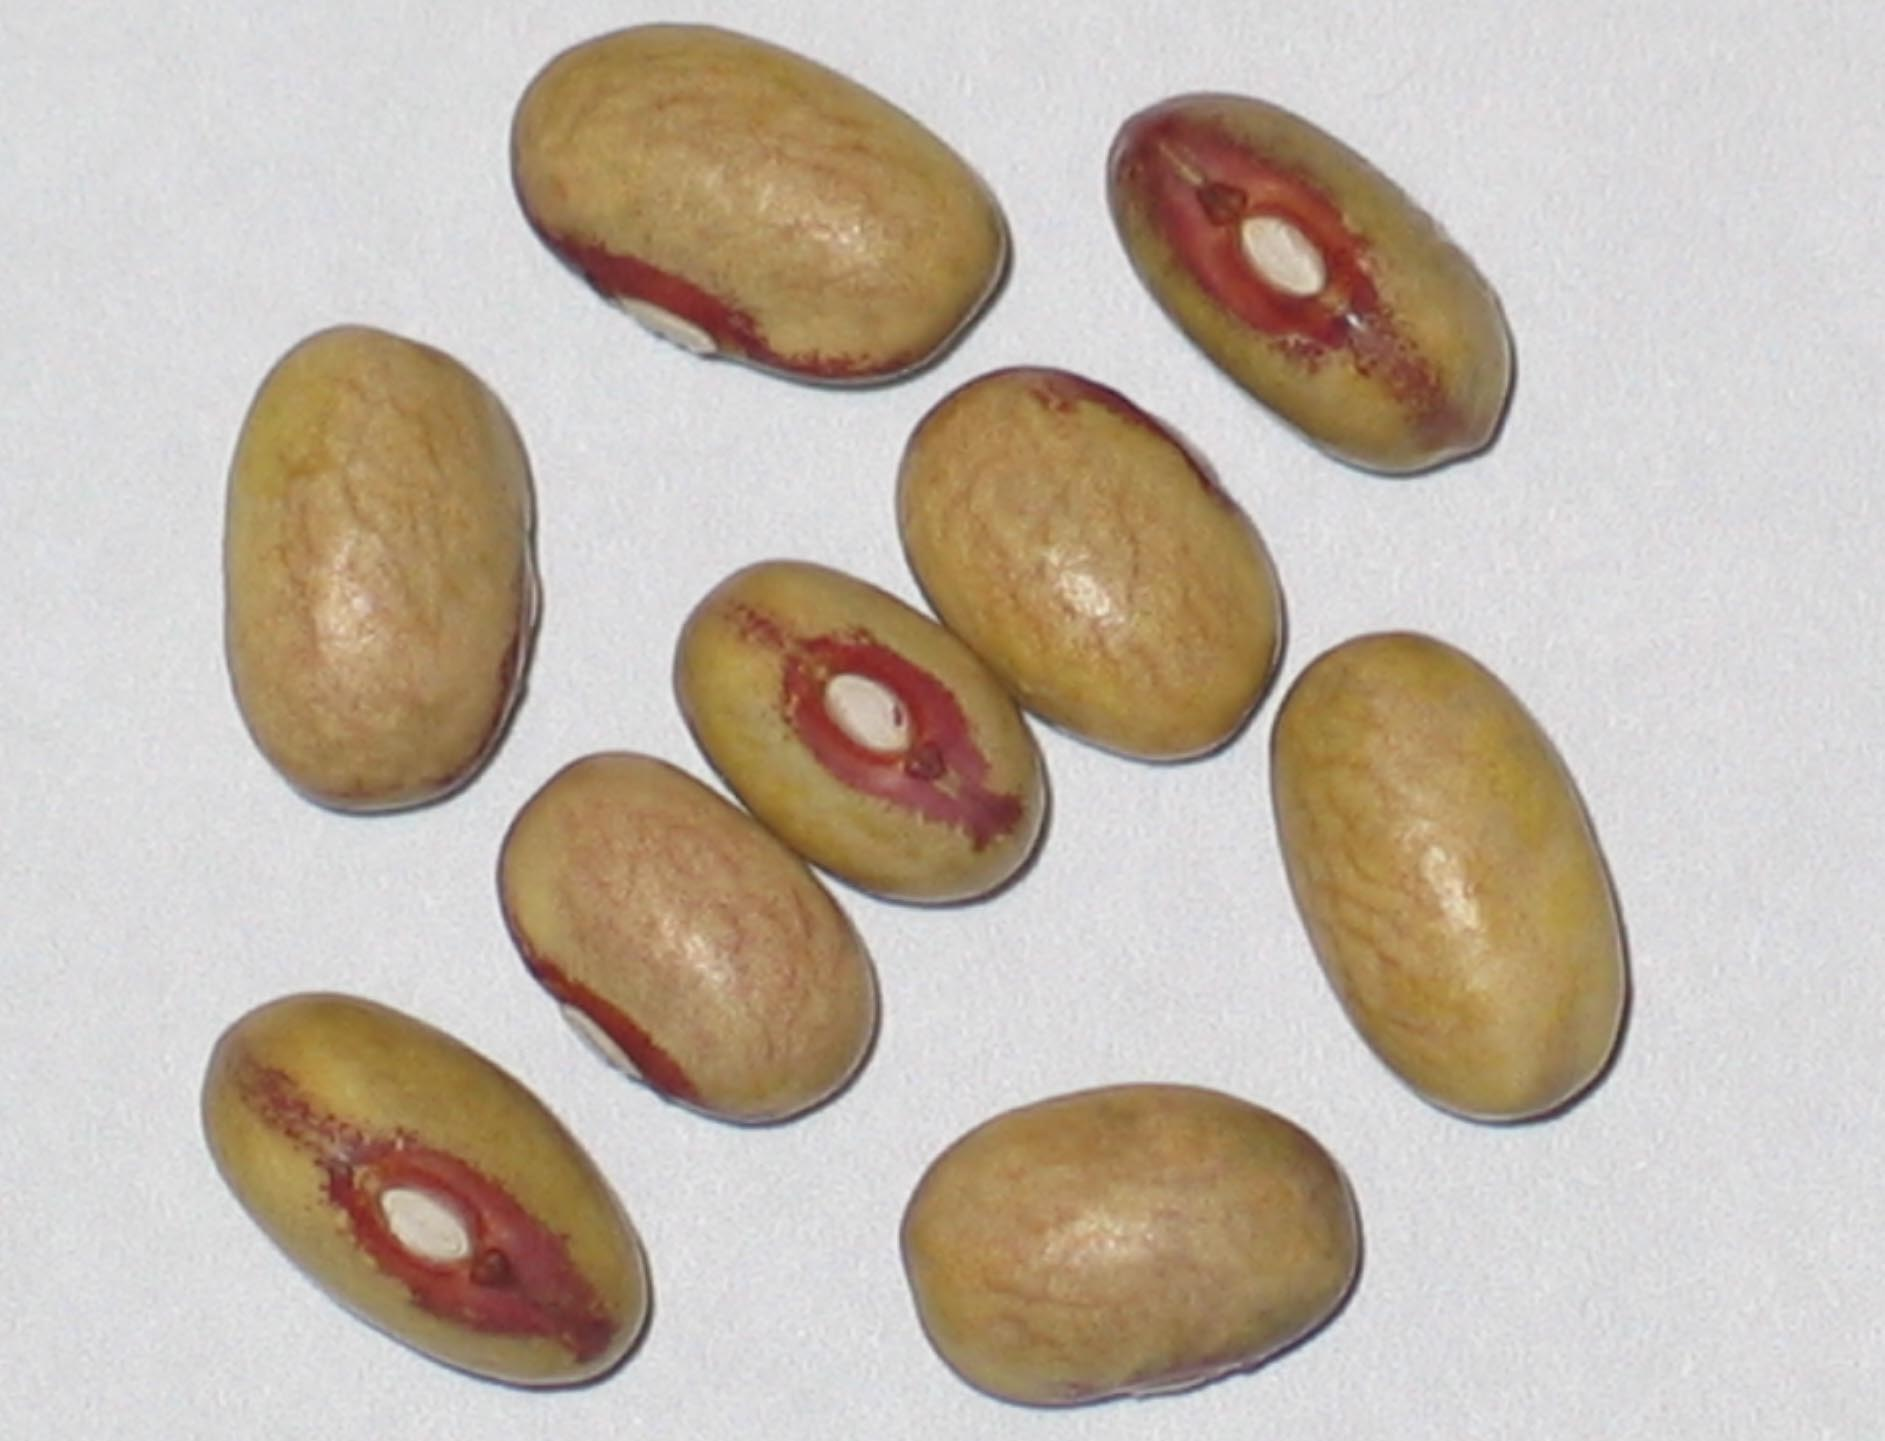 image of Chickasaw beans